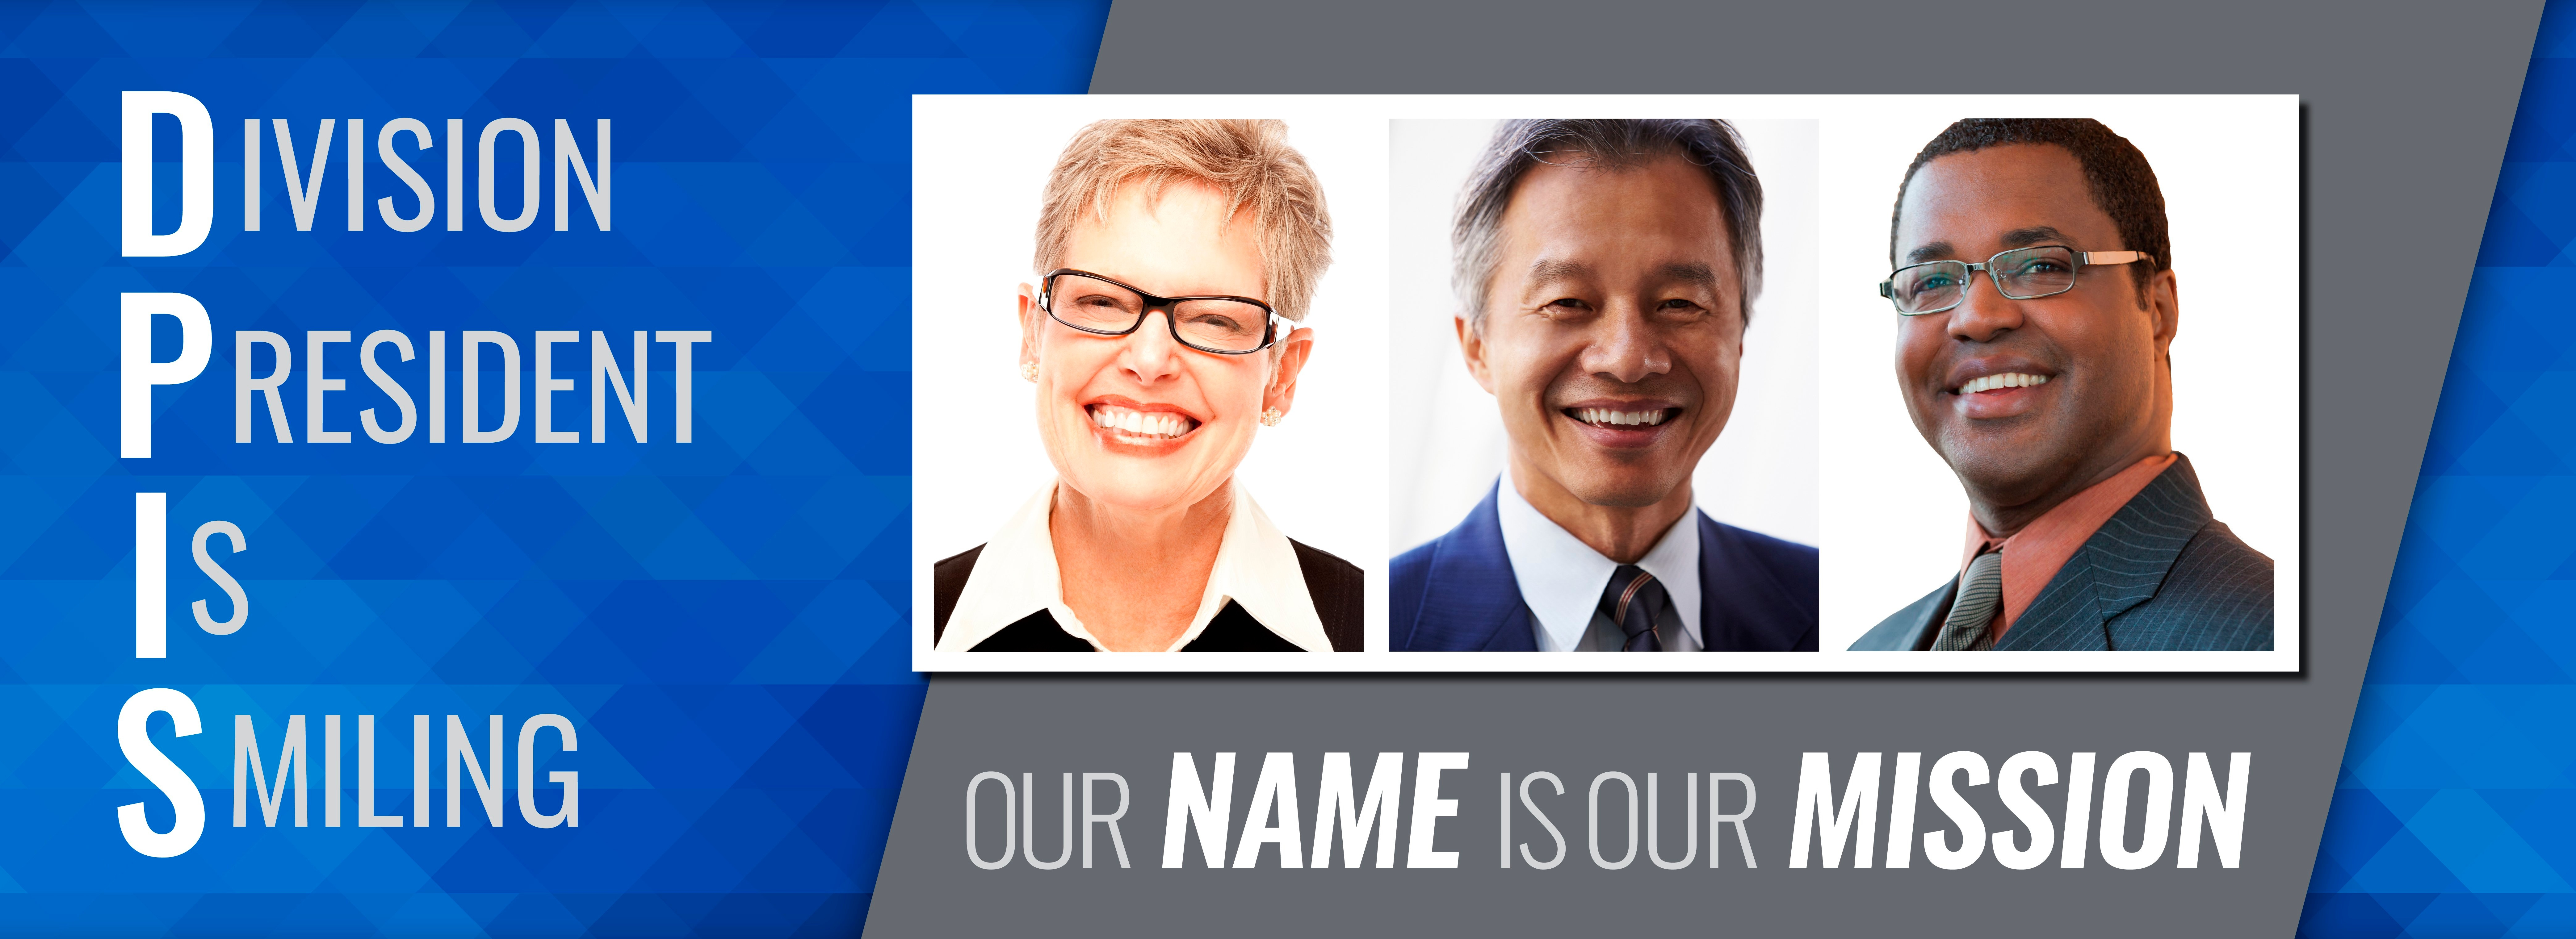 Our Name is Our Mission | Division President is Smiling | DPIS